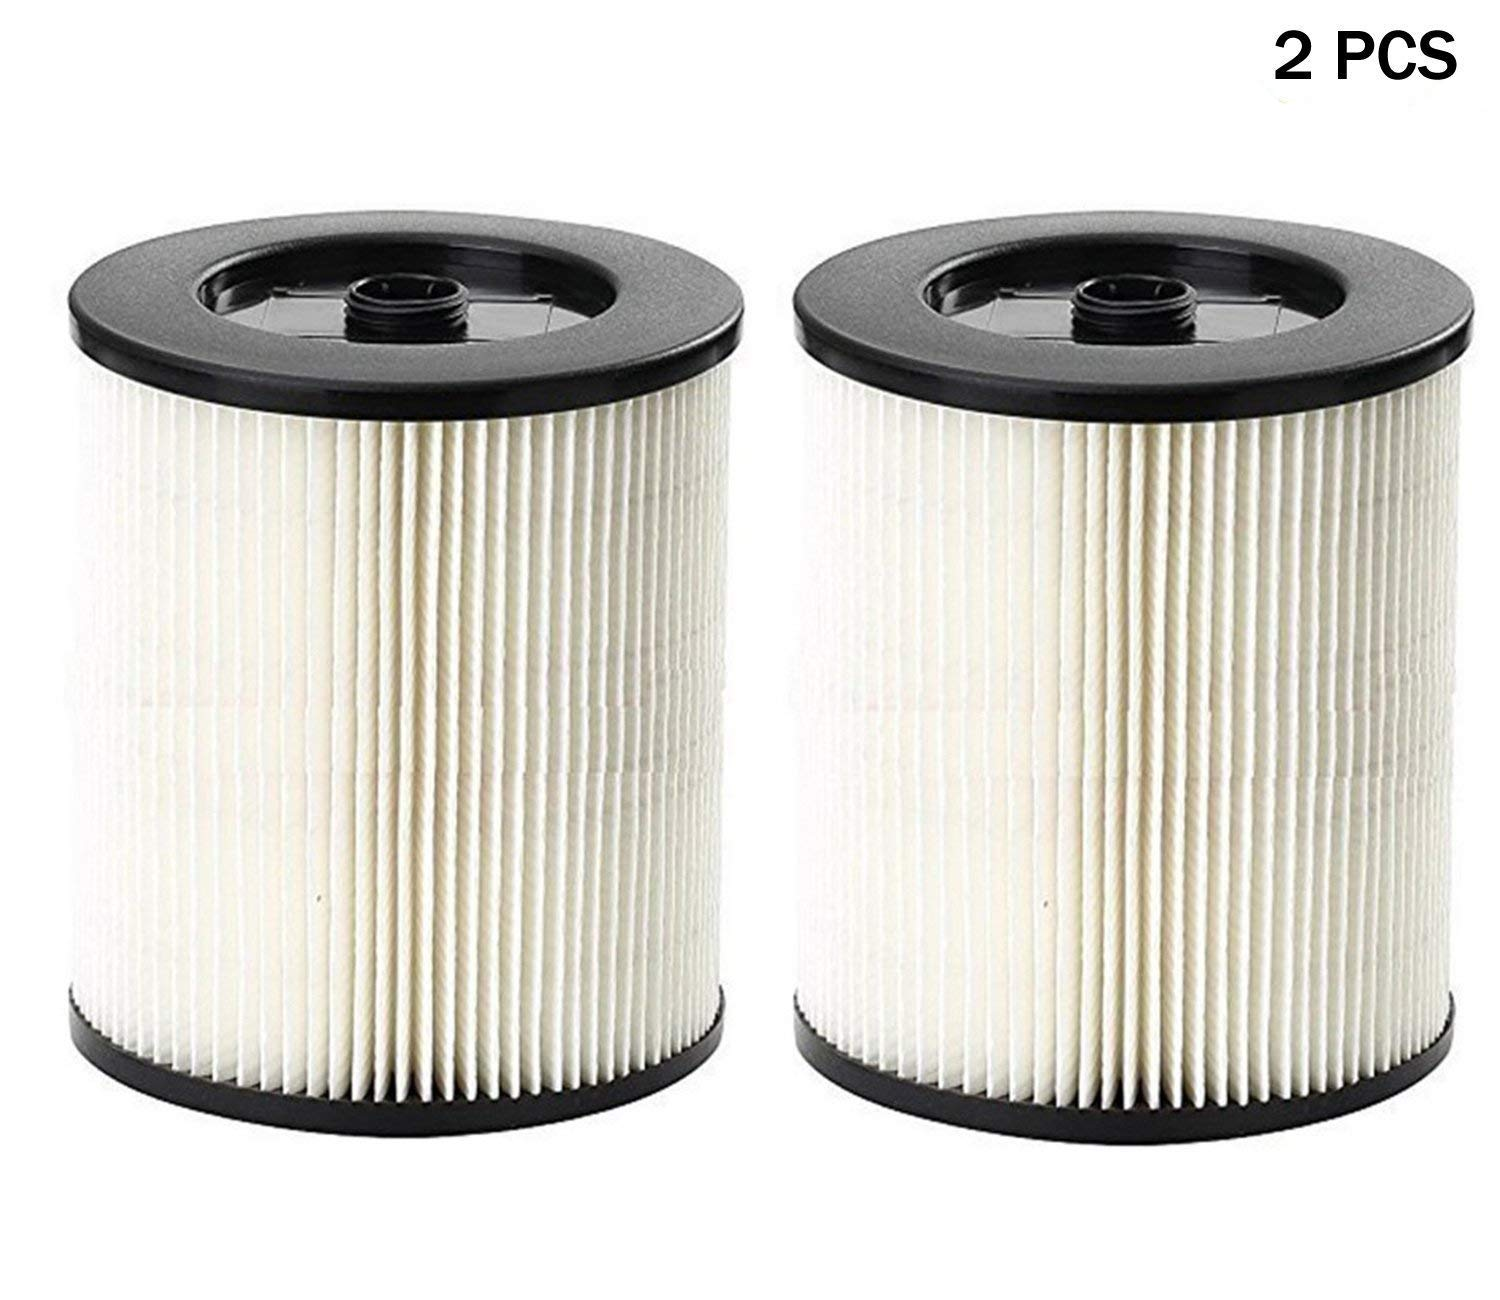 HIFROM Replacement Filter Fit Shop Vac Craftsman 9-17816 Wet Dry Vacuum Air Cartridge Filter (2 Pcs)